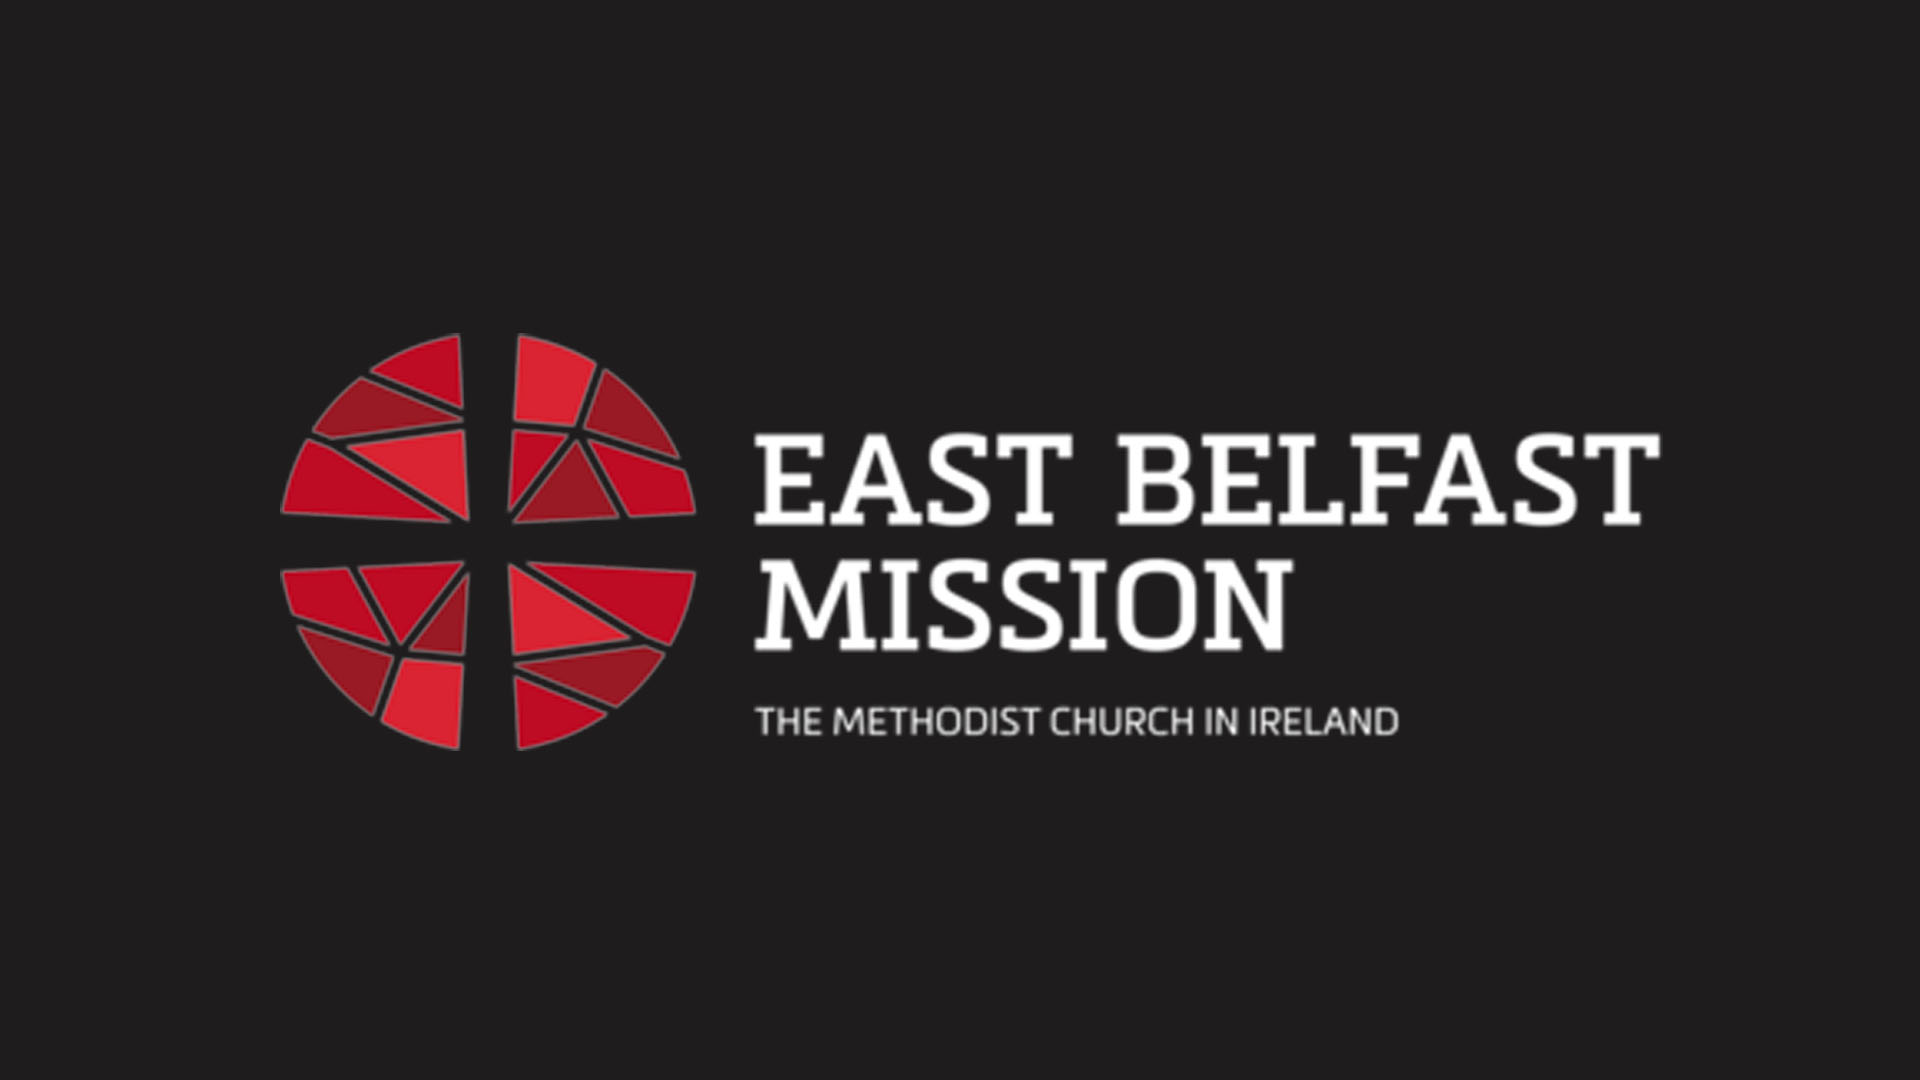 East Belfast Mission